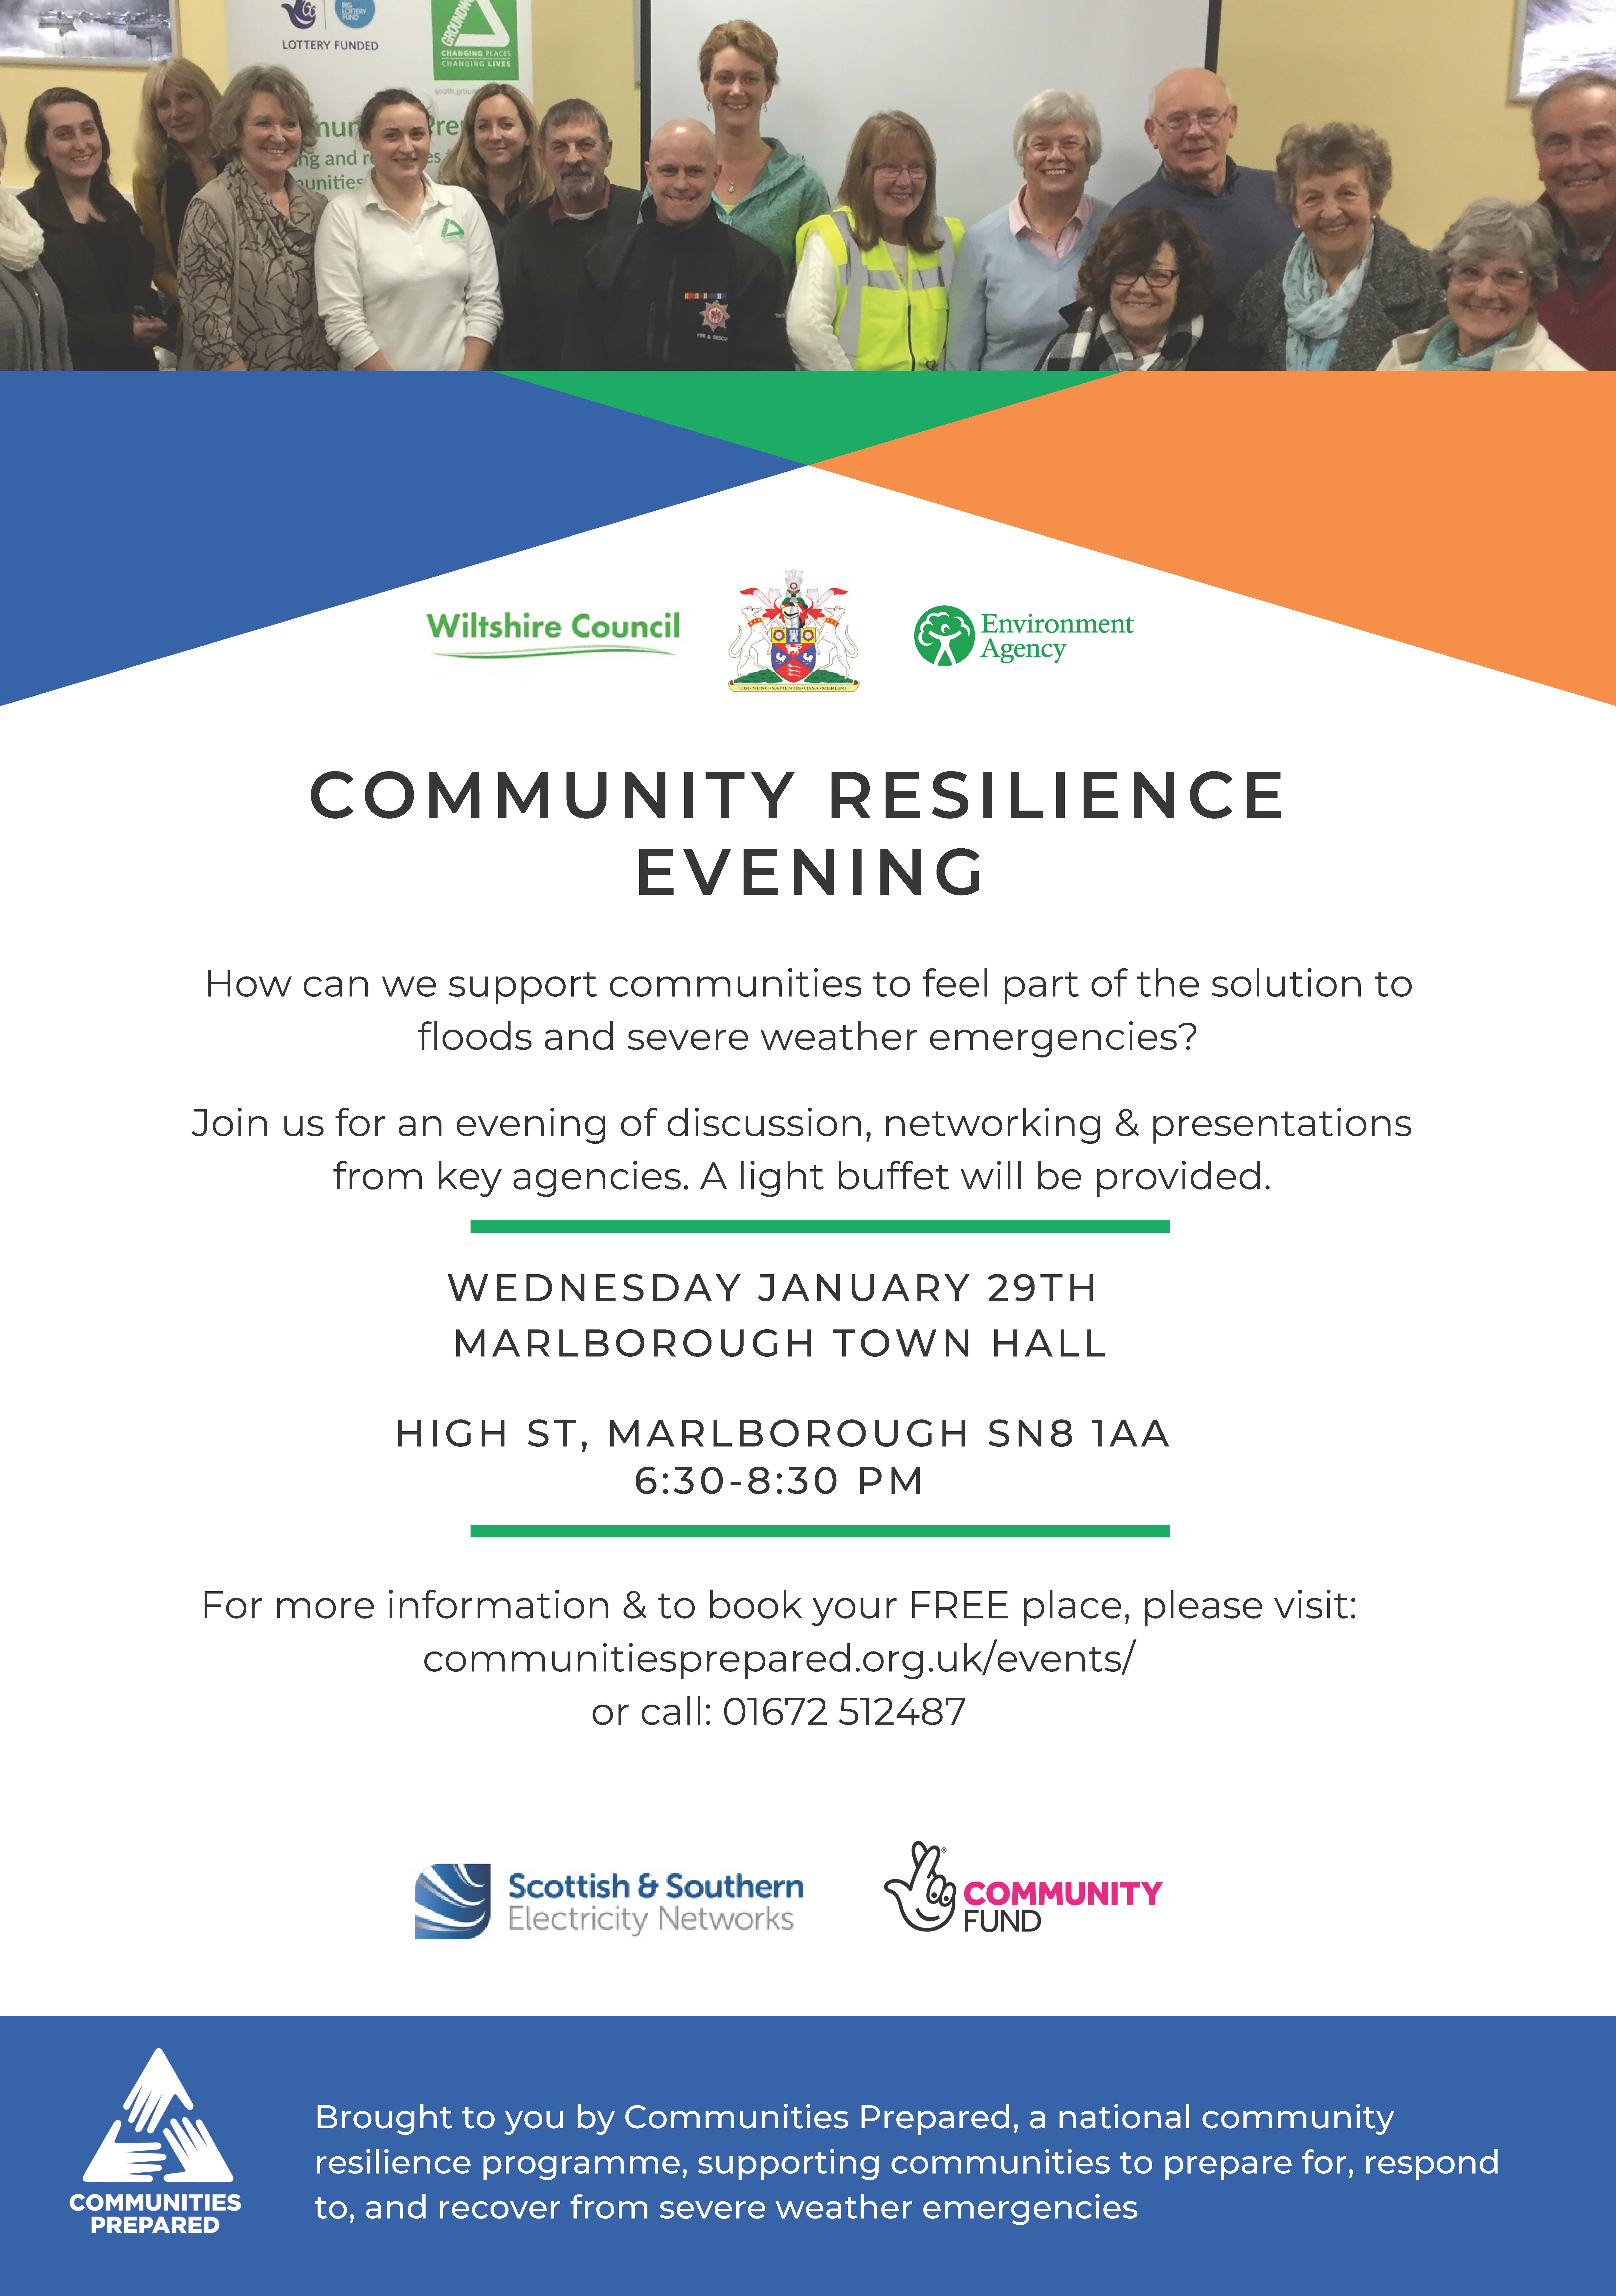 Community Resilience Evening poster Marlborough